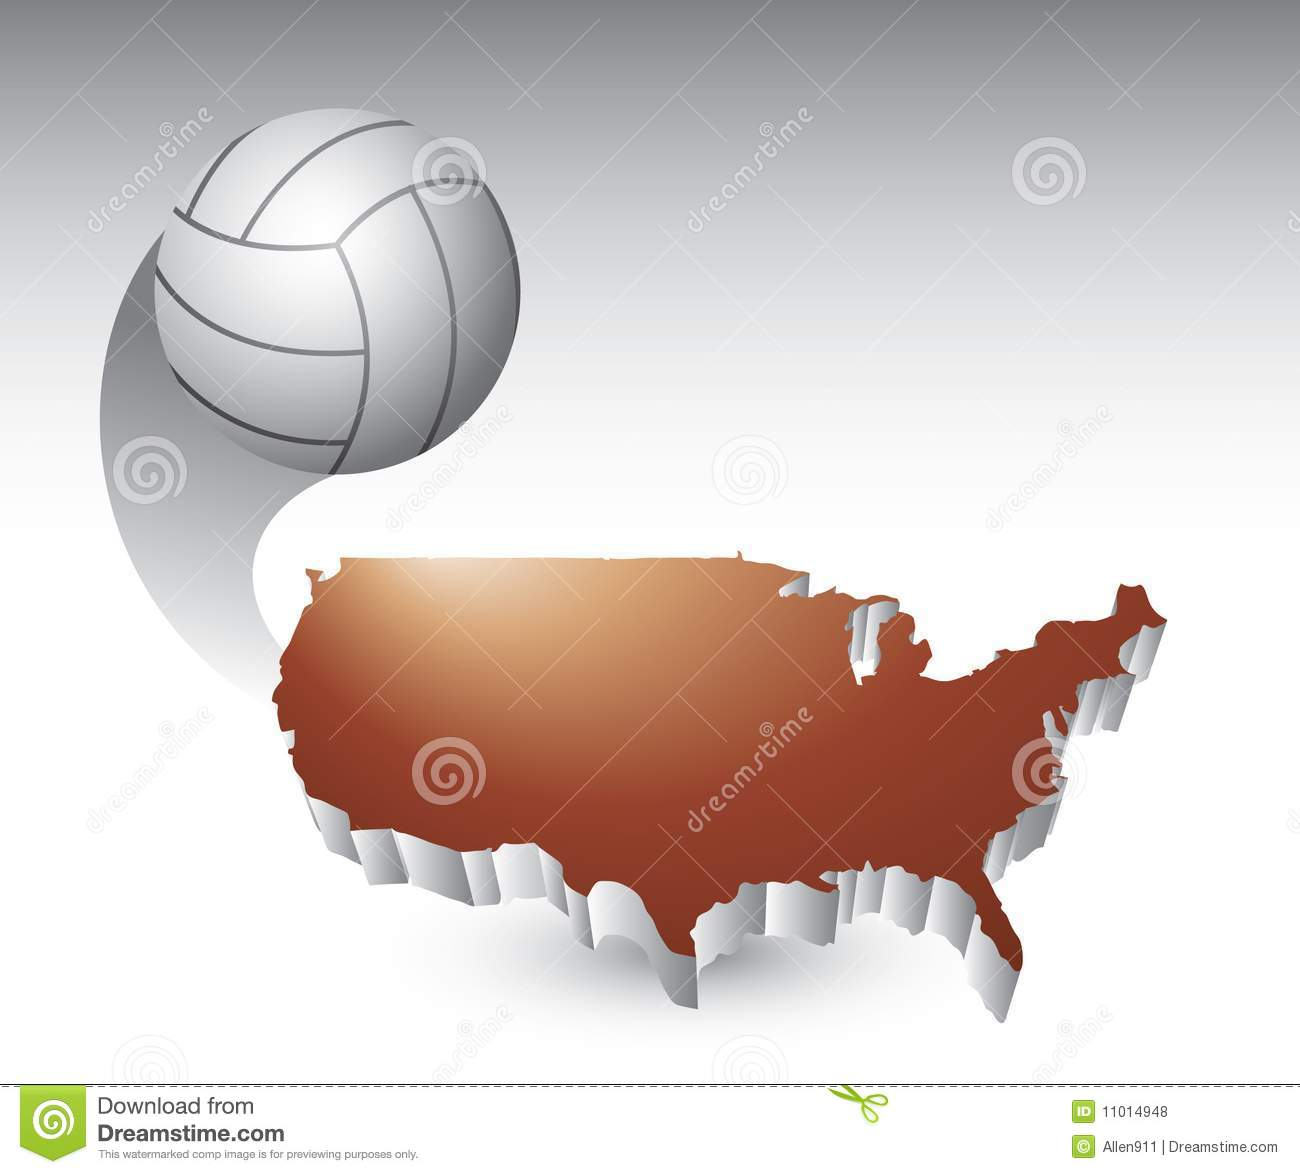 united states and volleyball United states juniors volleyball academy is committed to the development of future collegiate & professional volleyball athletes with the partnerships of many of the top professionals in the areas of coaching, training, biomechanics & player development us juniors is paving the way to success in the competitive volleyball industry.